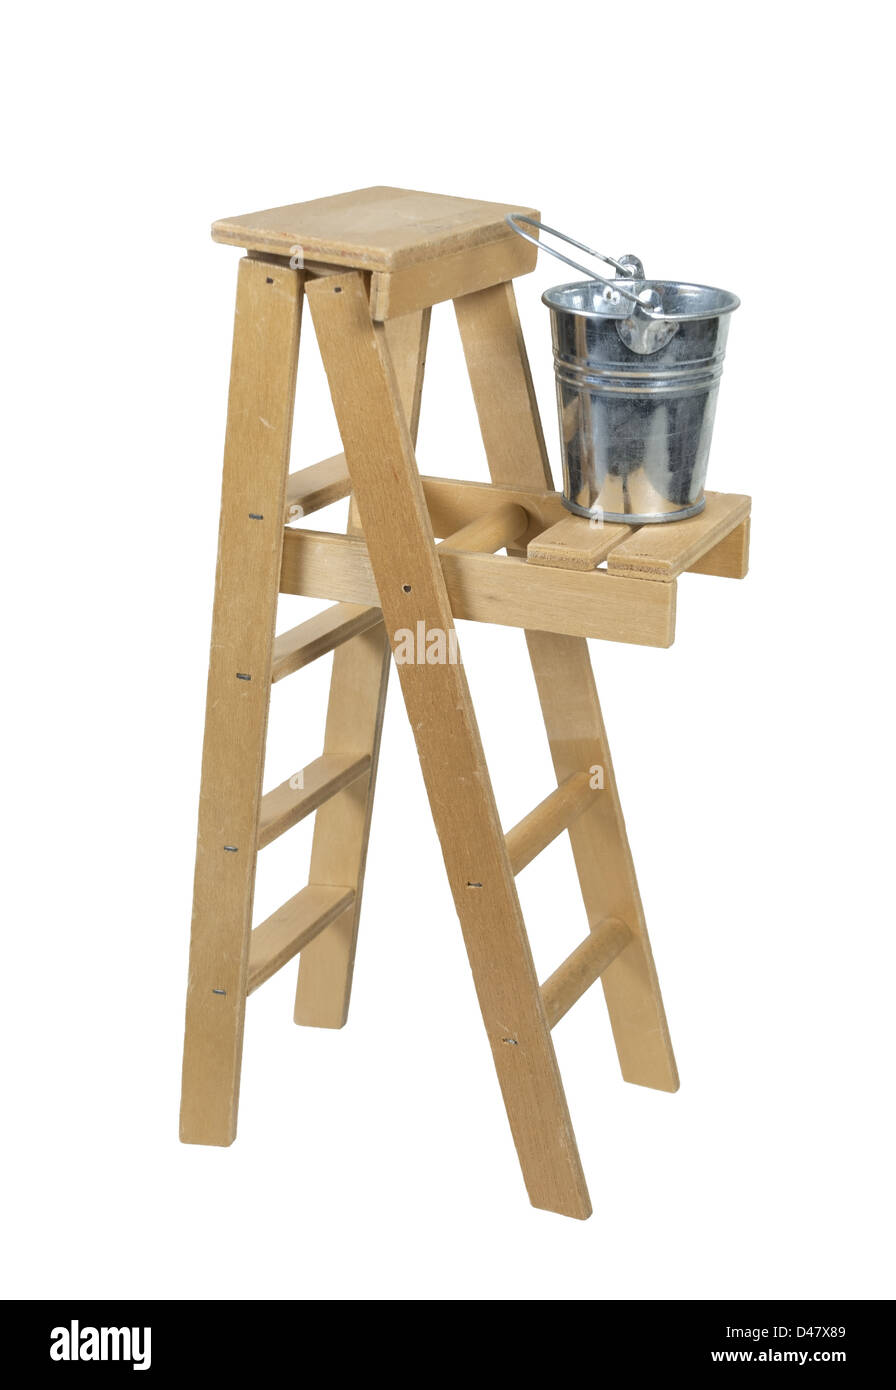 Bucket on a Ladder used for moving up or reaching higher goals - path included - Stock Image